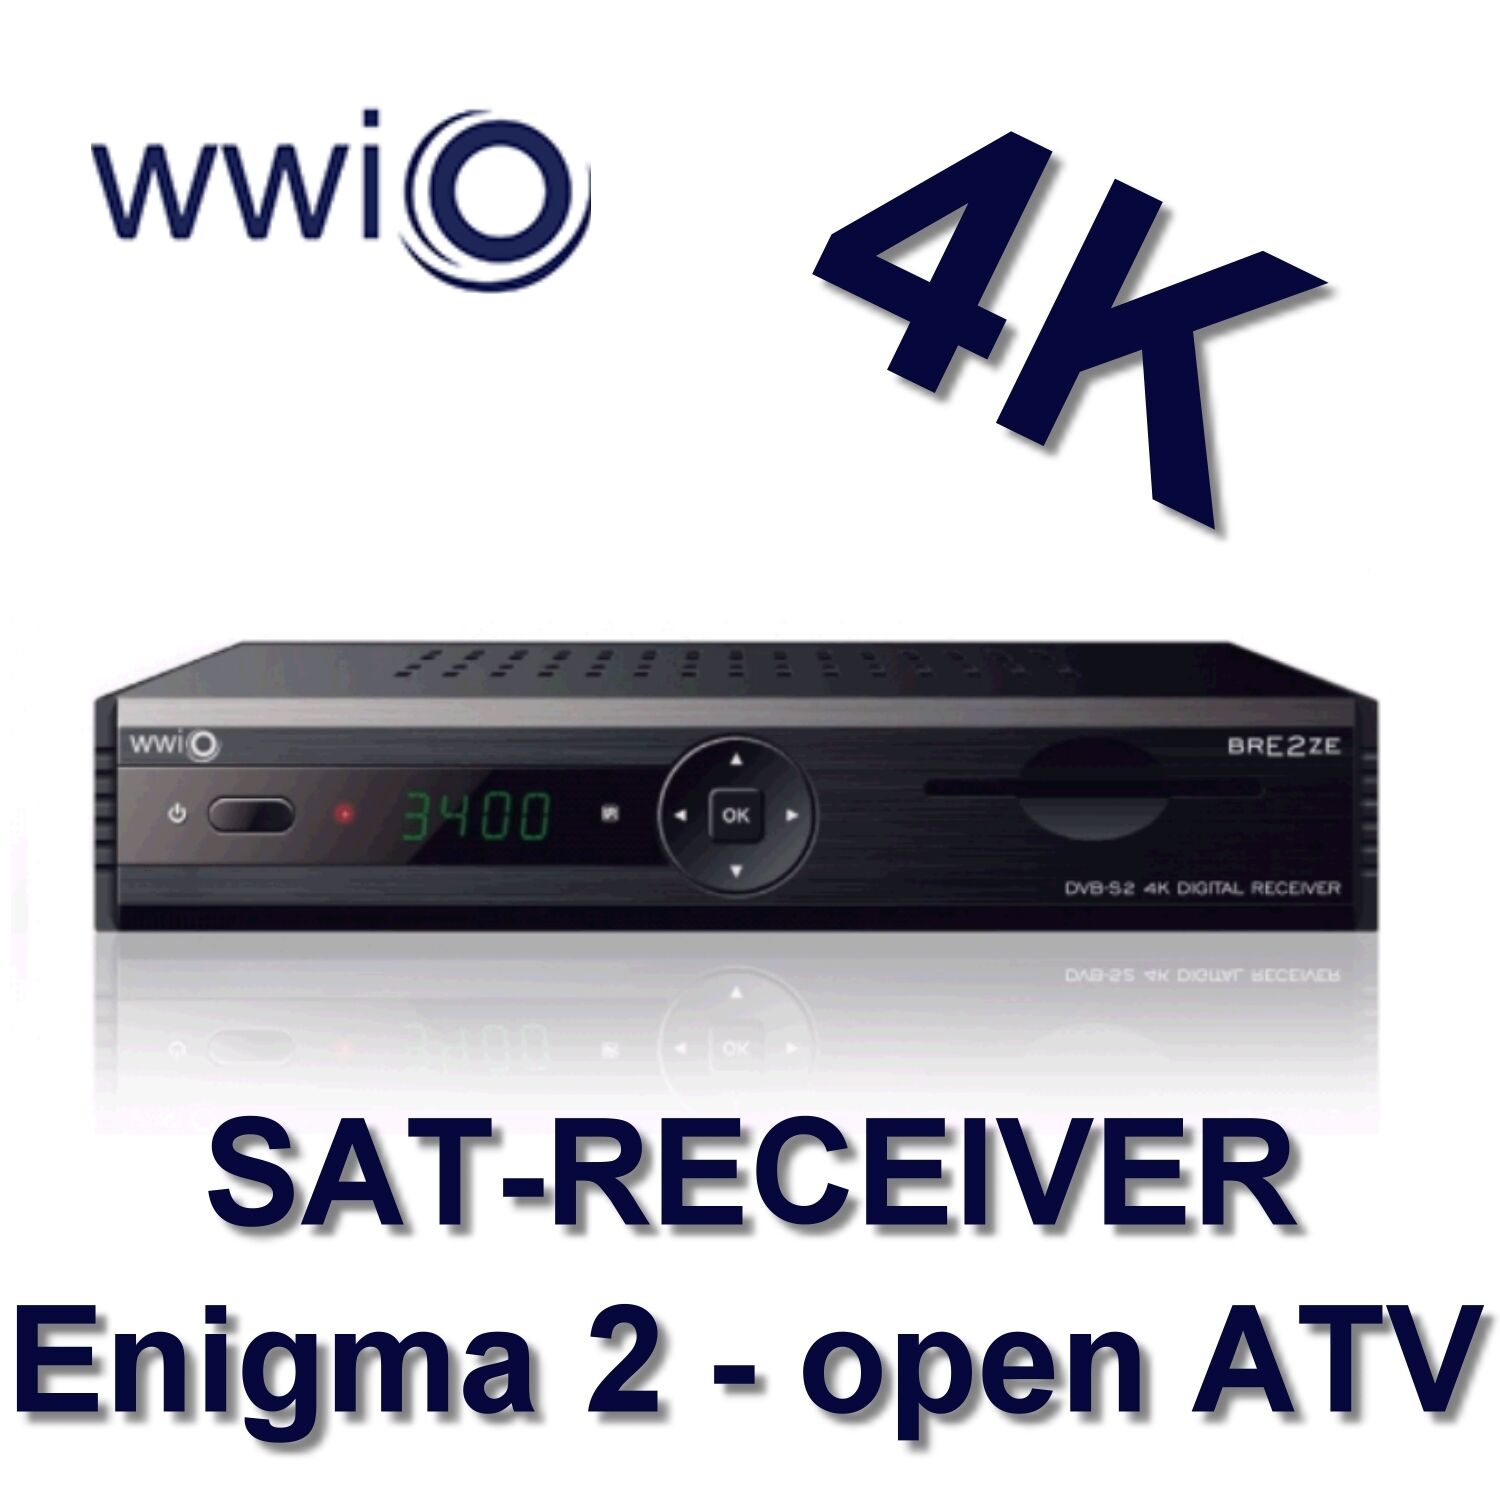 wwio satellitenreceiver bre2ze 4k 4k openatv sat. Black Bedroom Furniture Sets. Home Design Ideas